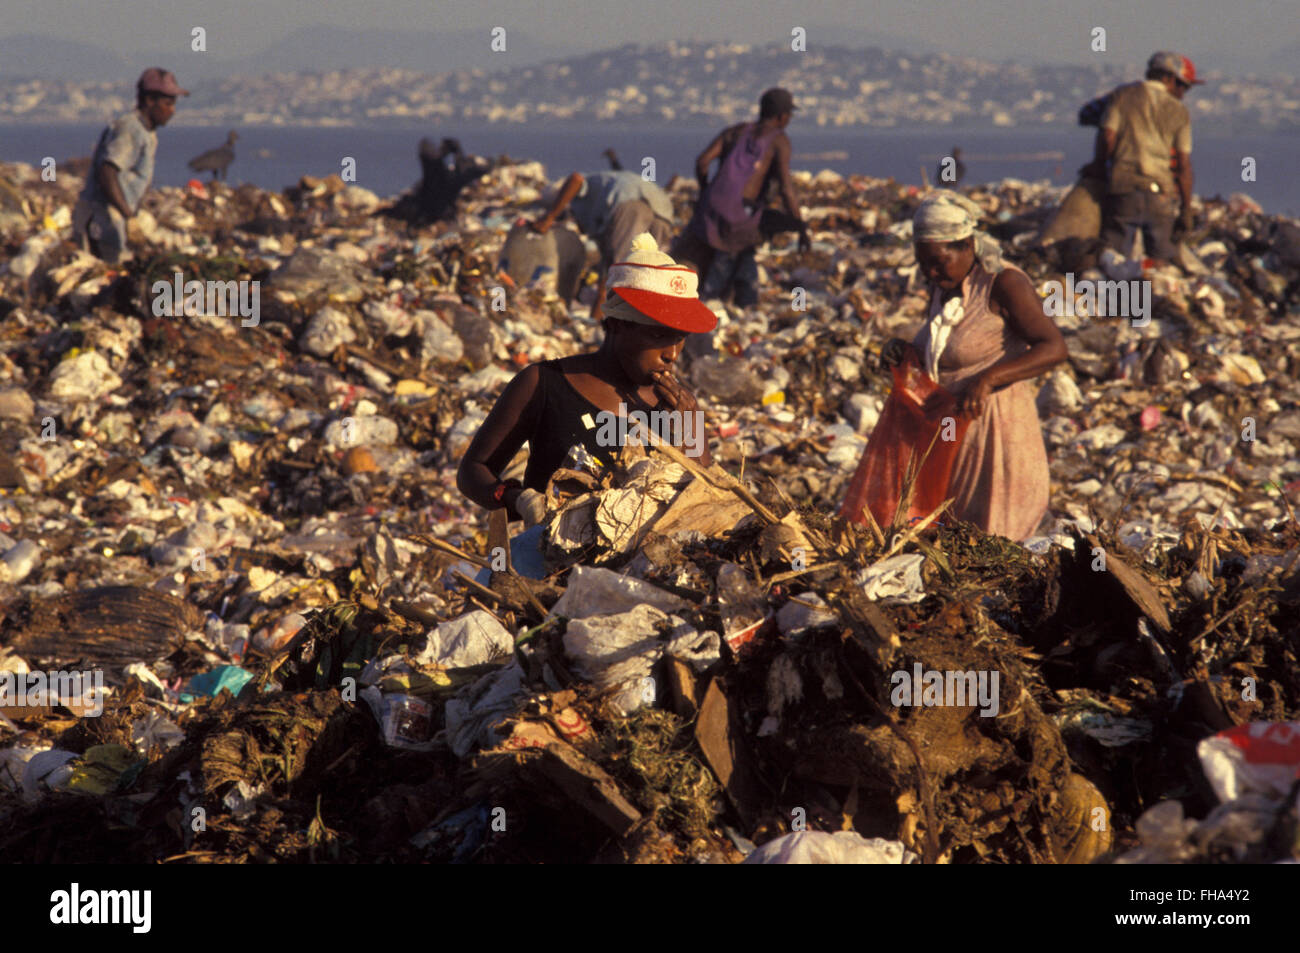 Food Garbage Dump High Resolution Stock Photography and Images - Alamy